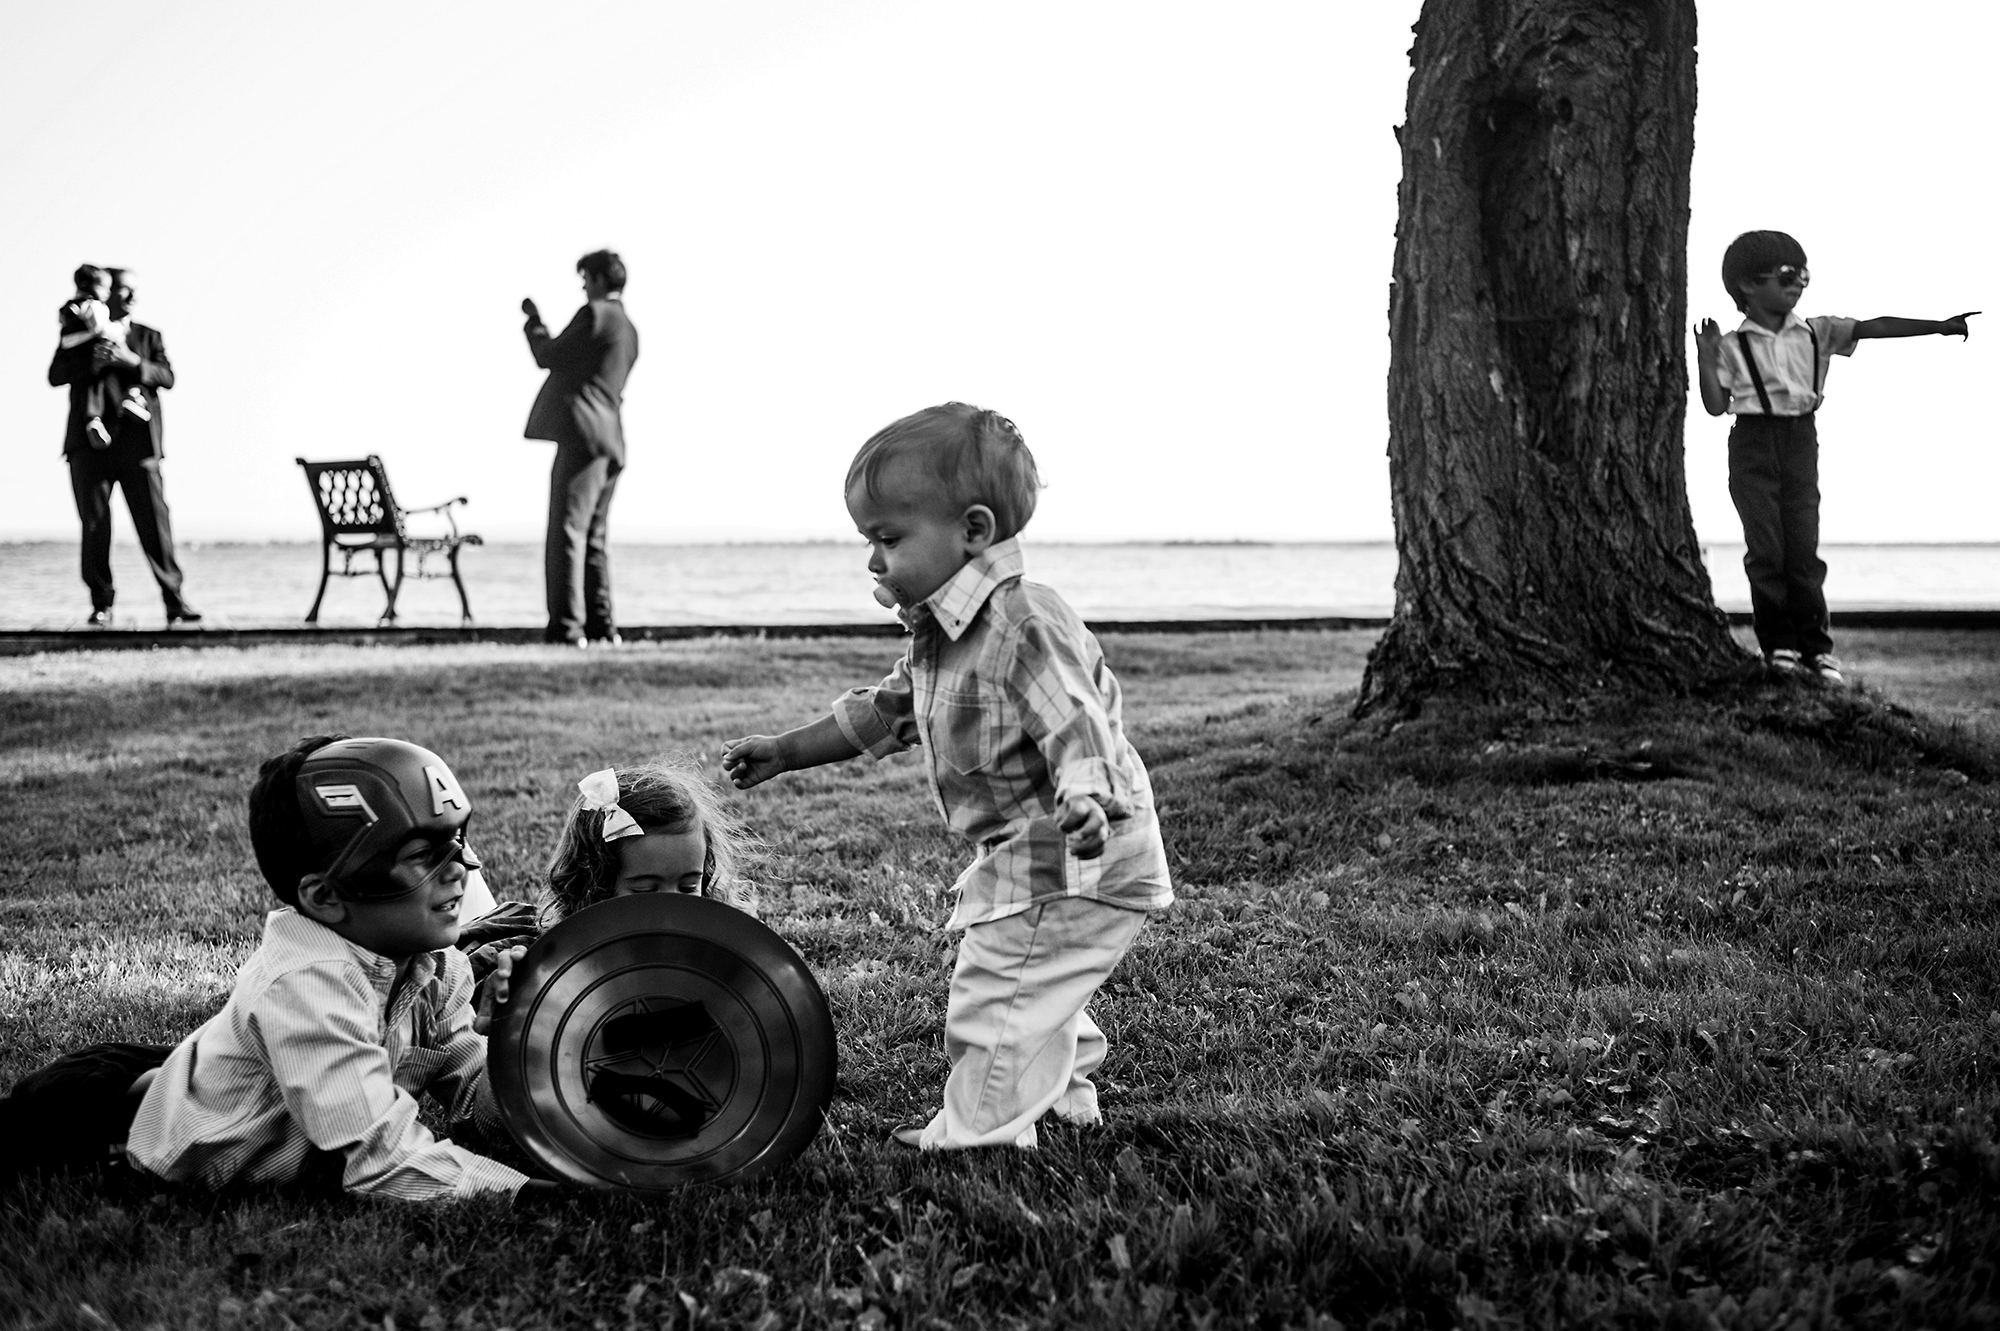 KIds playing with guests in the background - photo by Davina + Daniel